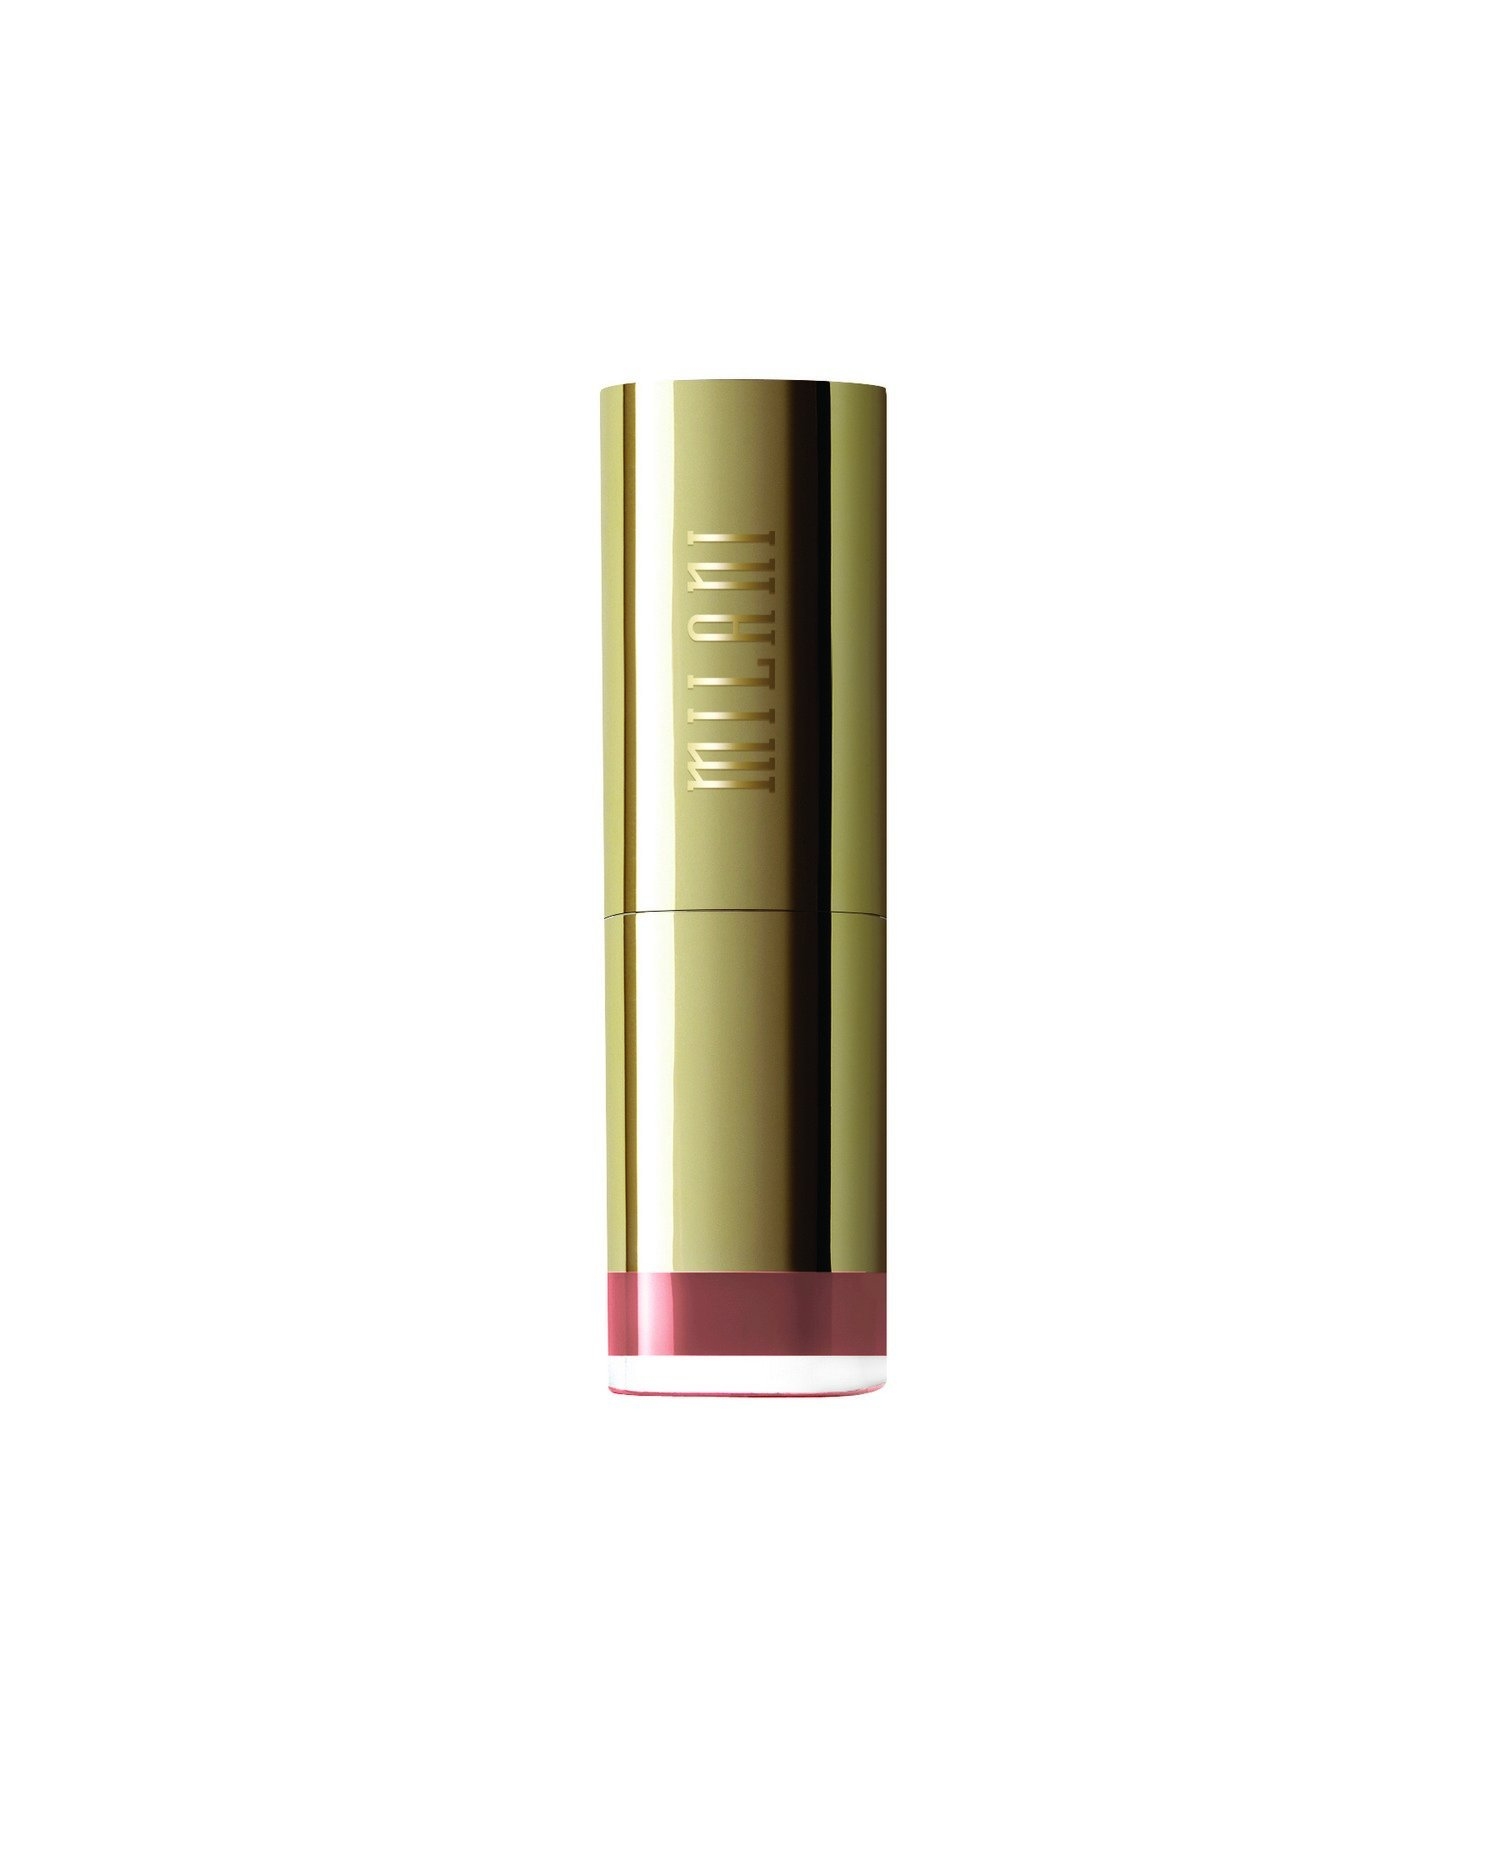 Milani Color Statement Lipstick, Matte Beauty, 0.14 Ounce